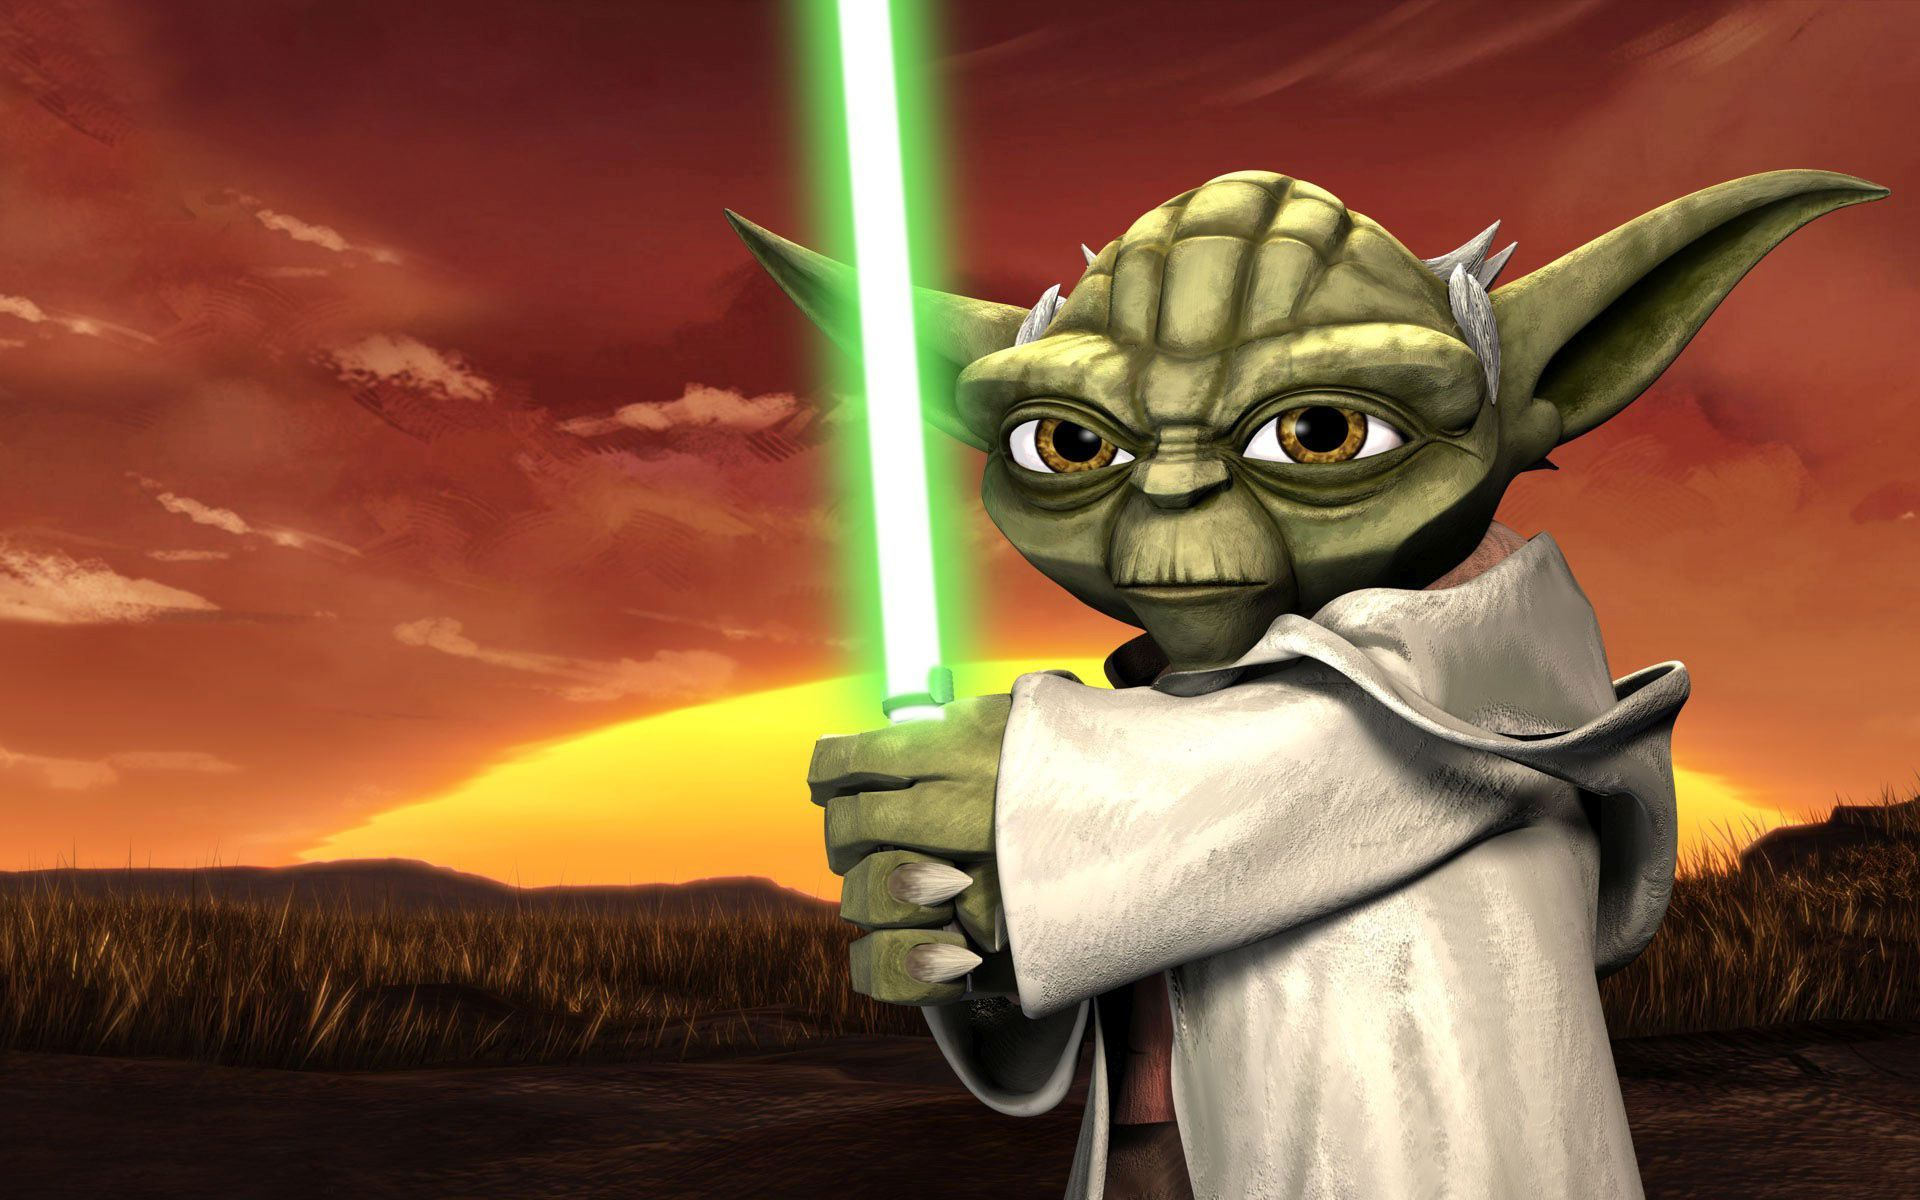 23418-yoda-with-a-lightsaber-star-wars-the-clone-wars-game-desktop-wallpaper-1920x1200